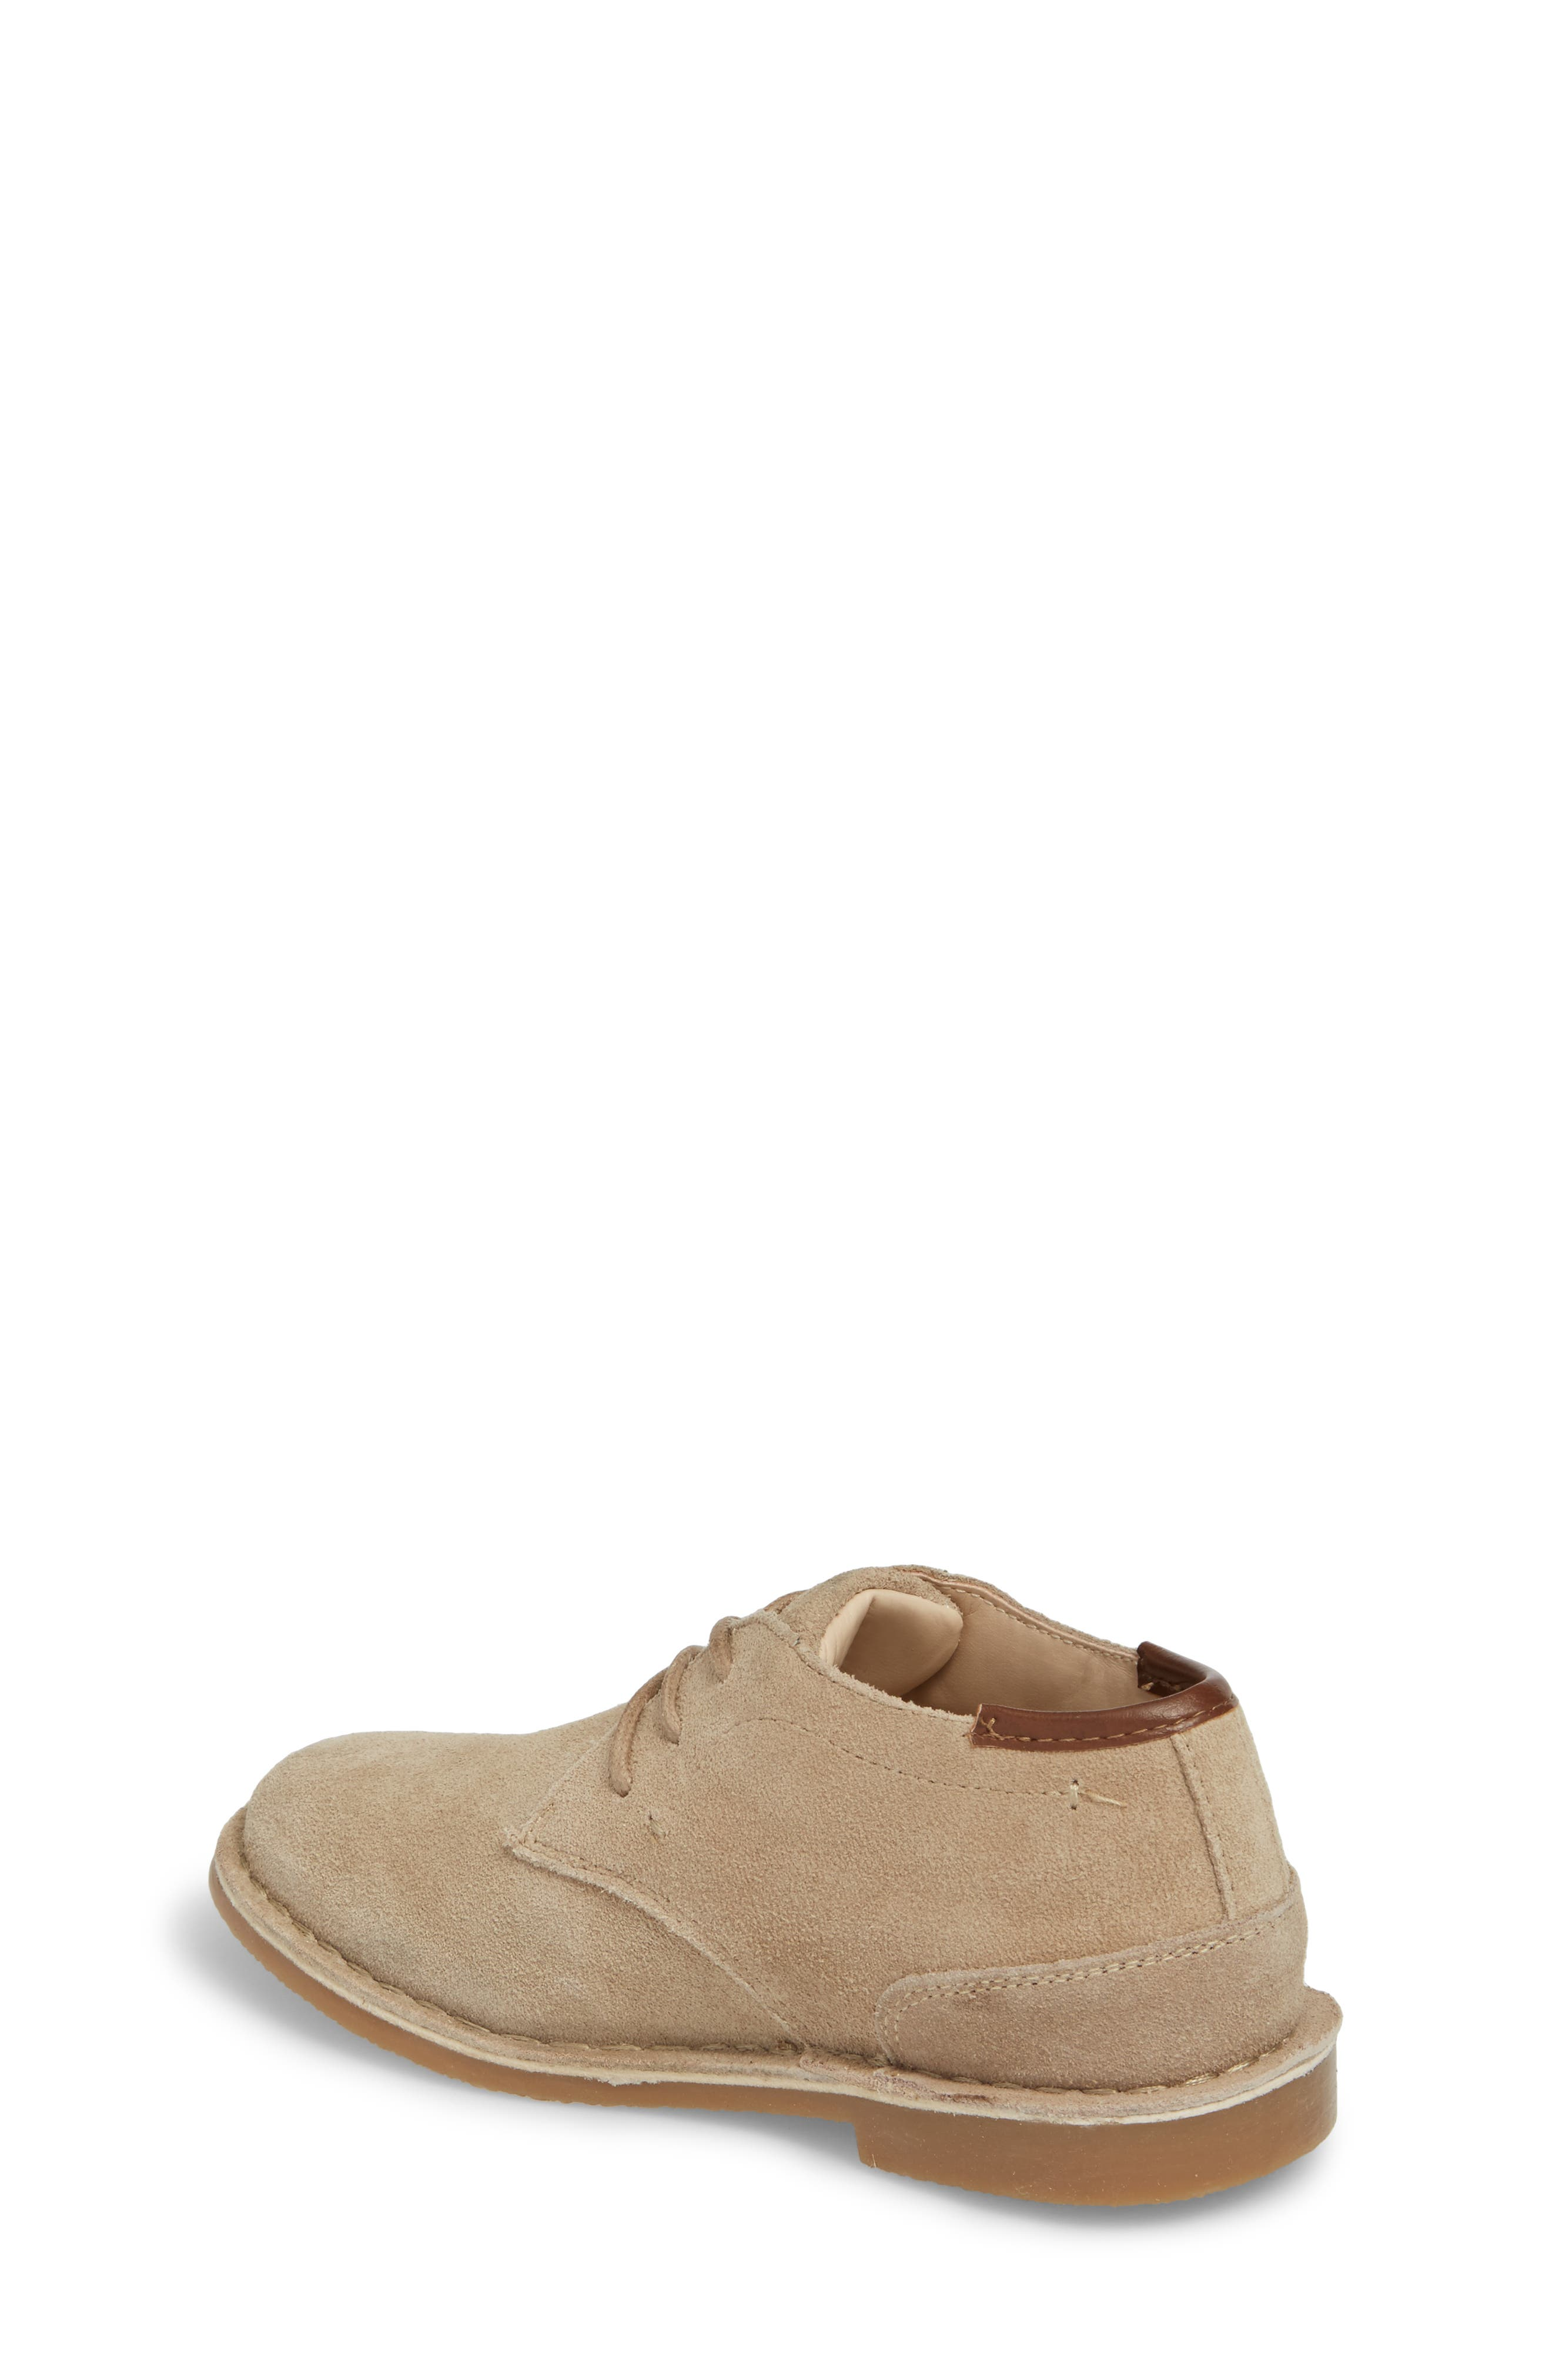 Alternate Image 2  - Kenneth Cole New York Real Deal Chukka Boot (Walker, Toddler, Little Kid & Big Kid)